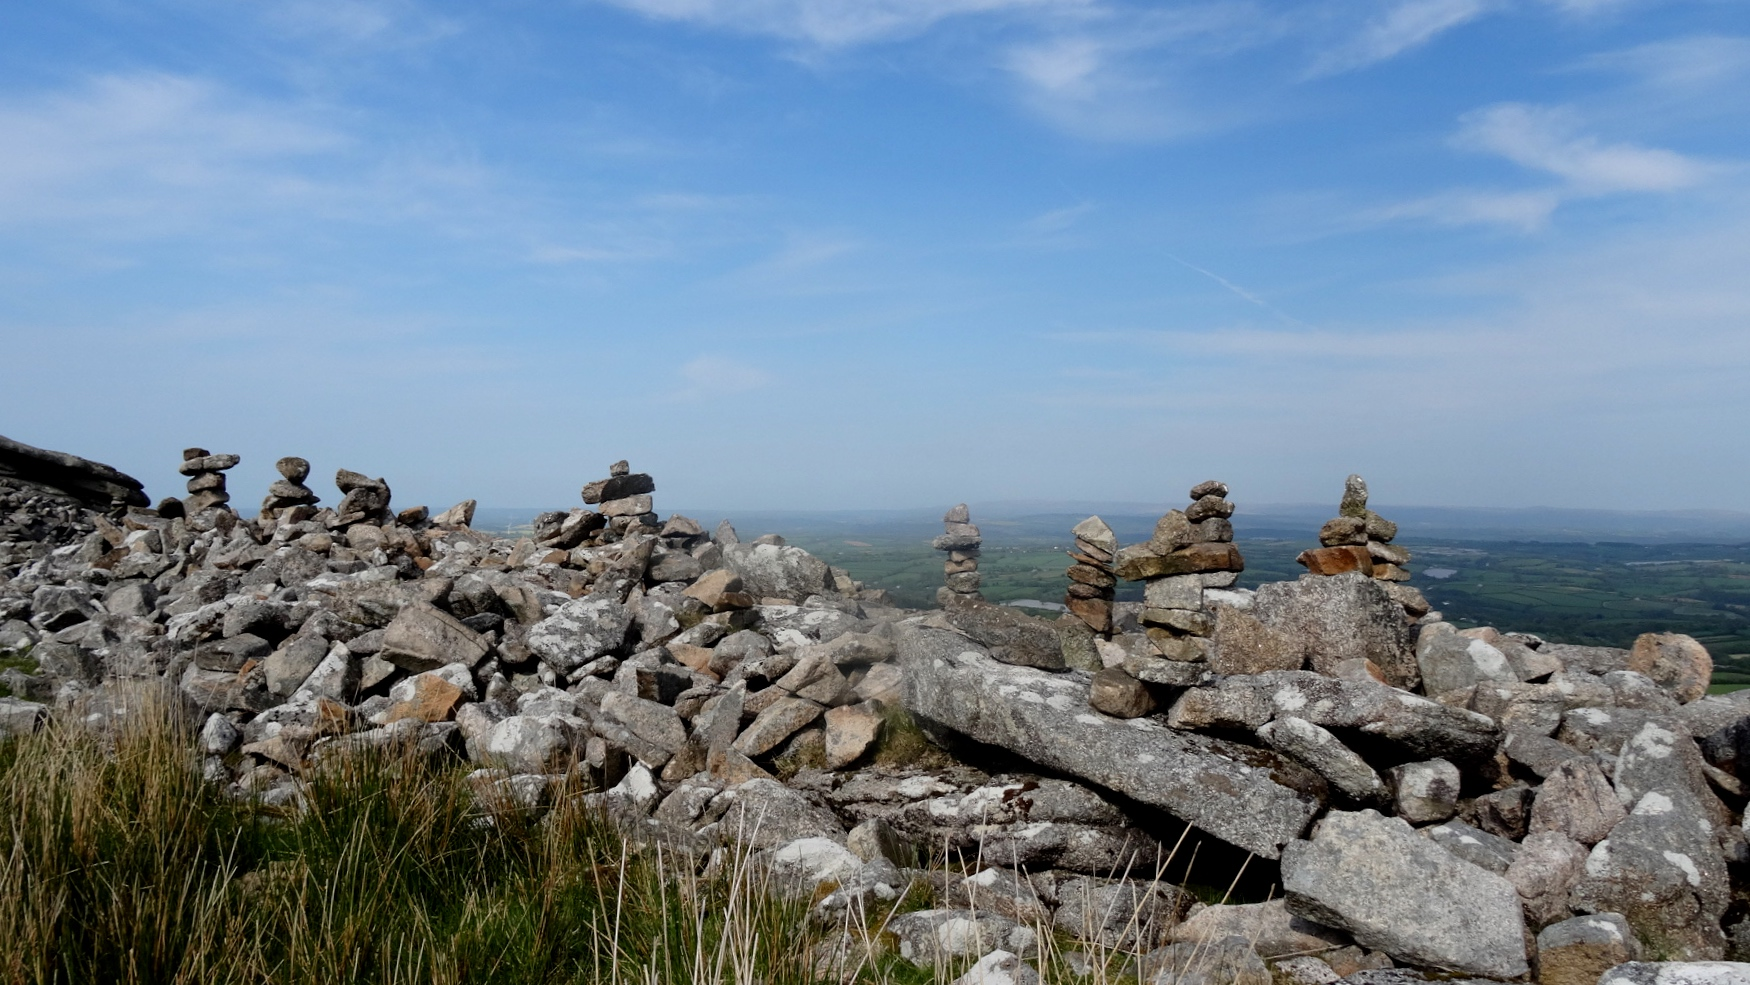 """""""Fairy castles"""" examples of unintentional vandalism on Stowe's Pound, Bodmin Moor"""